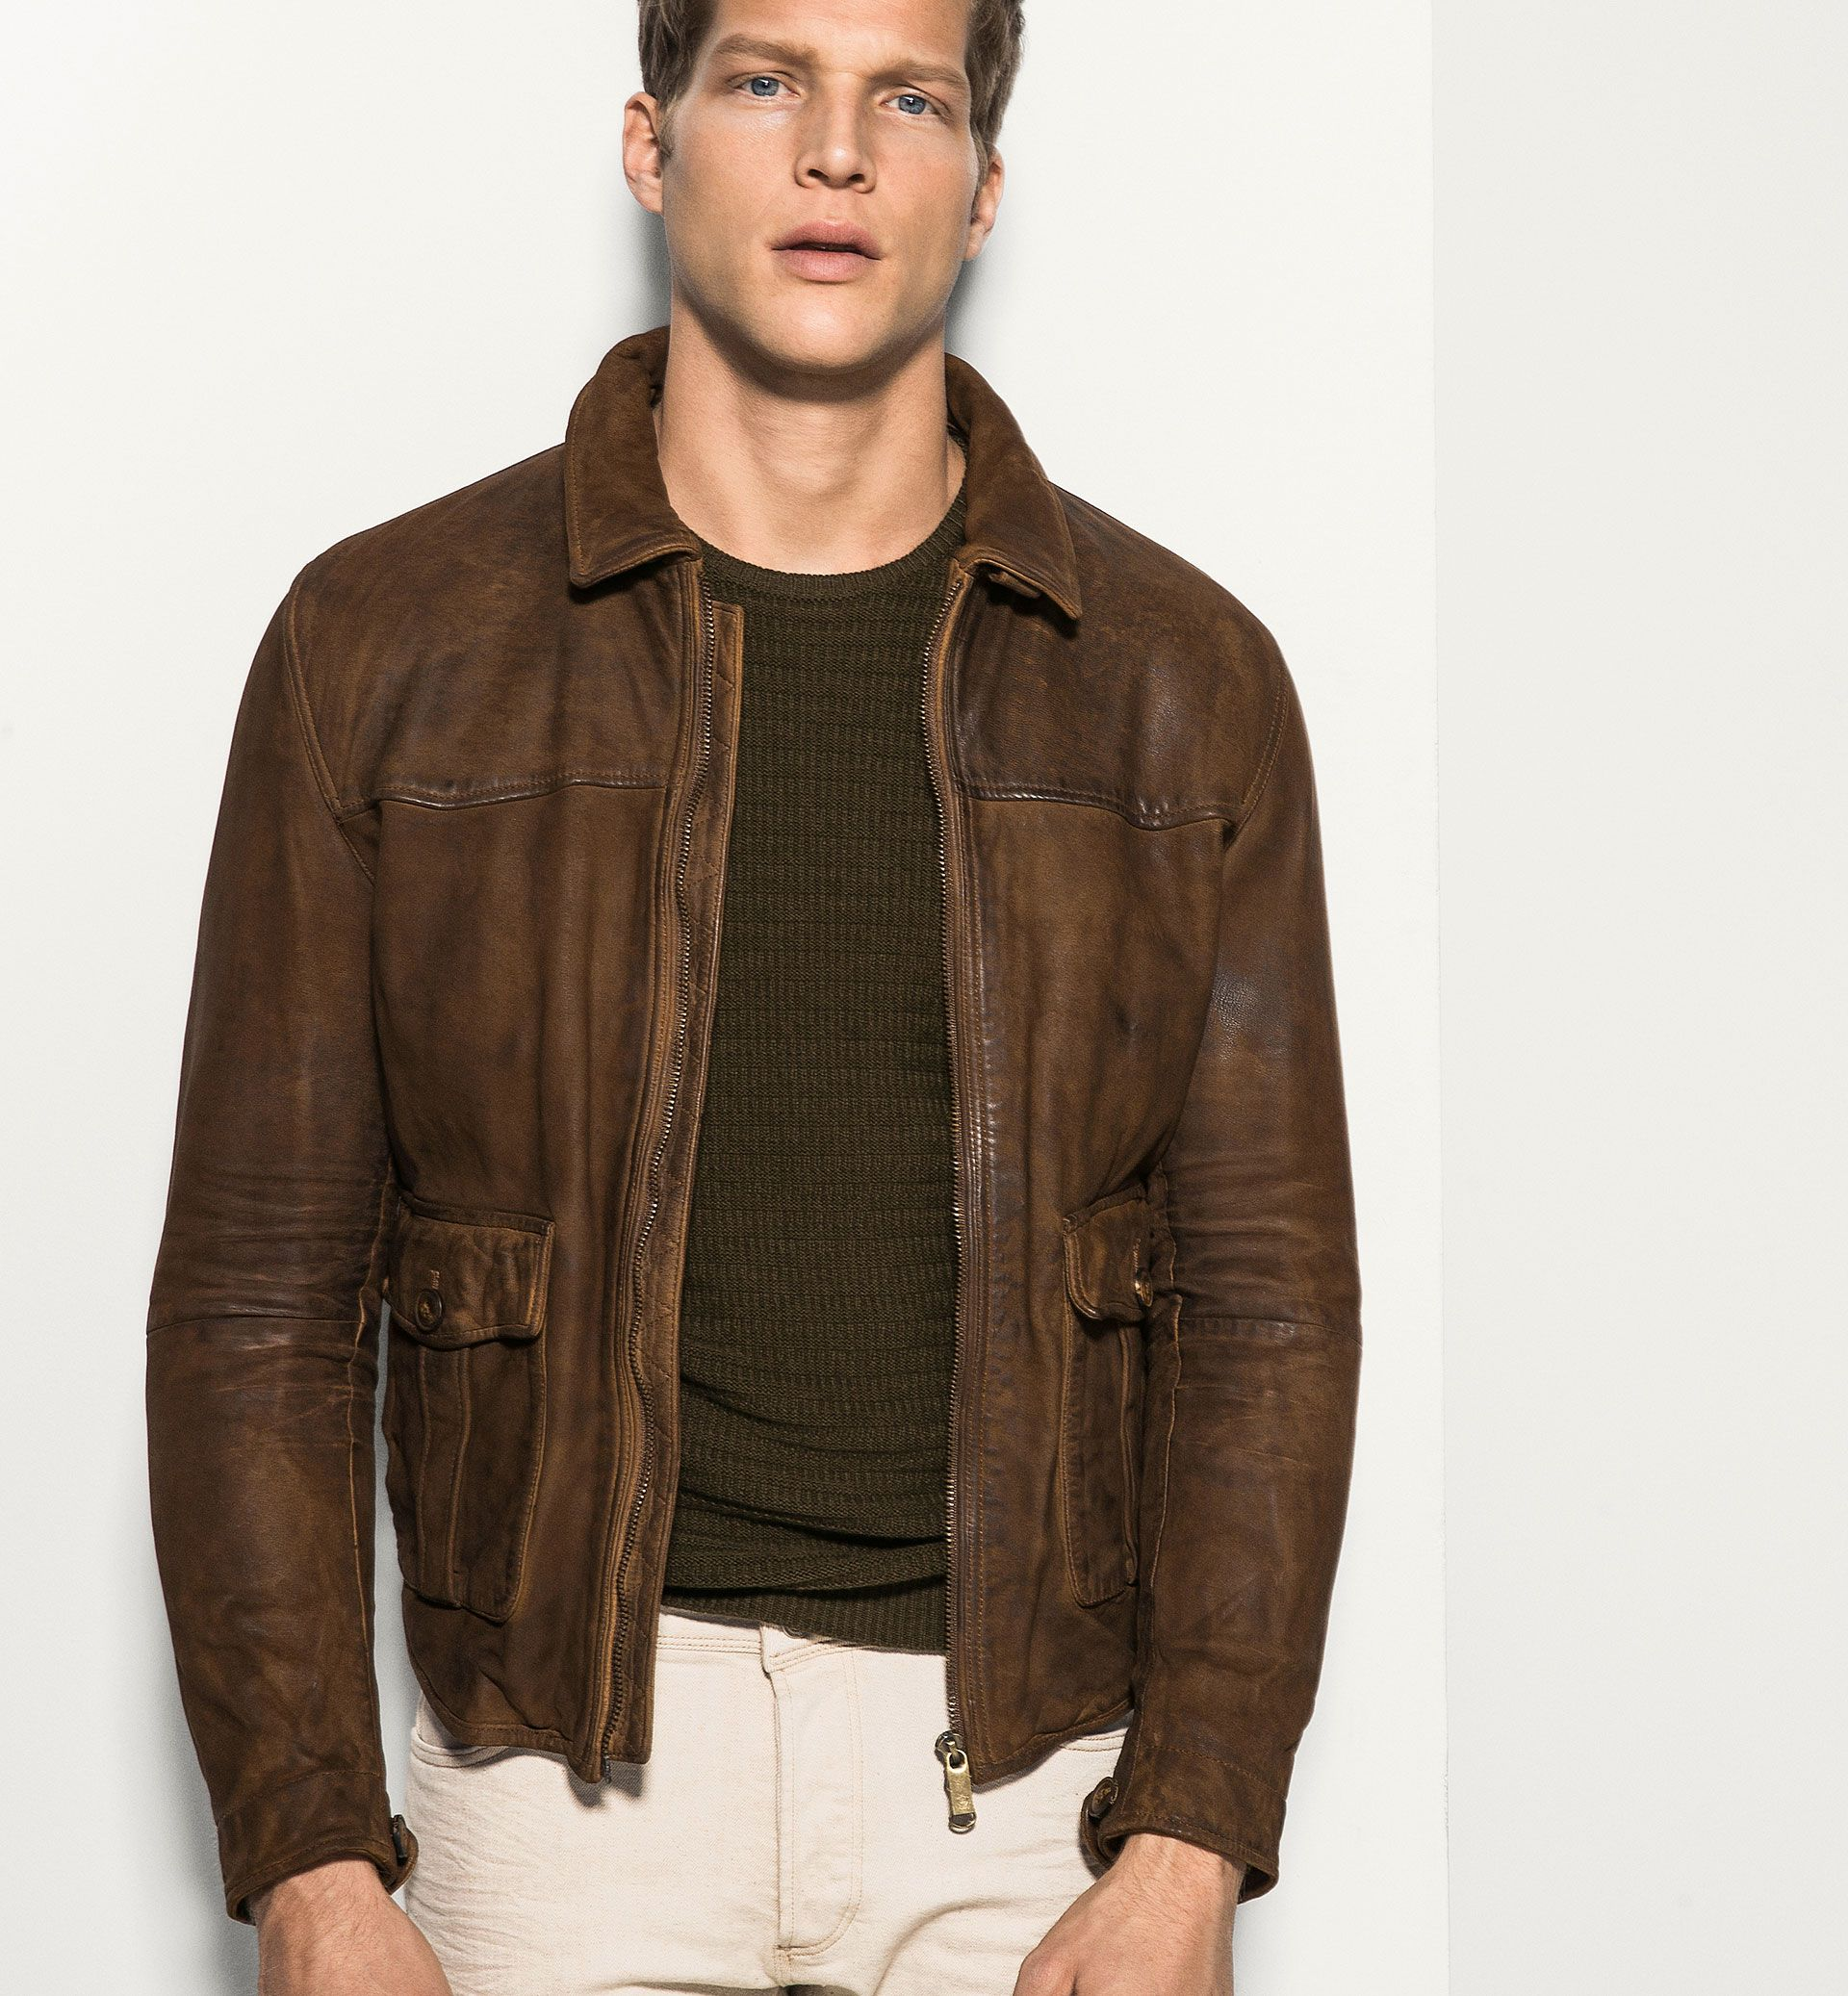 542c435e0 VINTAGE NAPPA LEATHER JACKET | my massimo dutti in 2019 | Leather ...